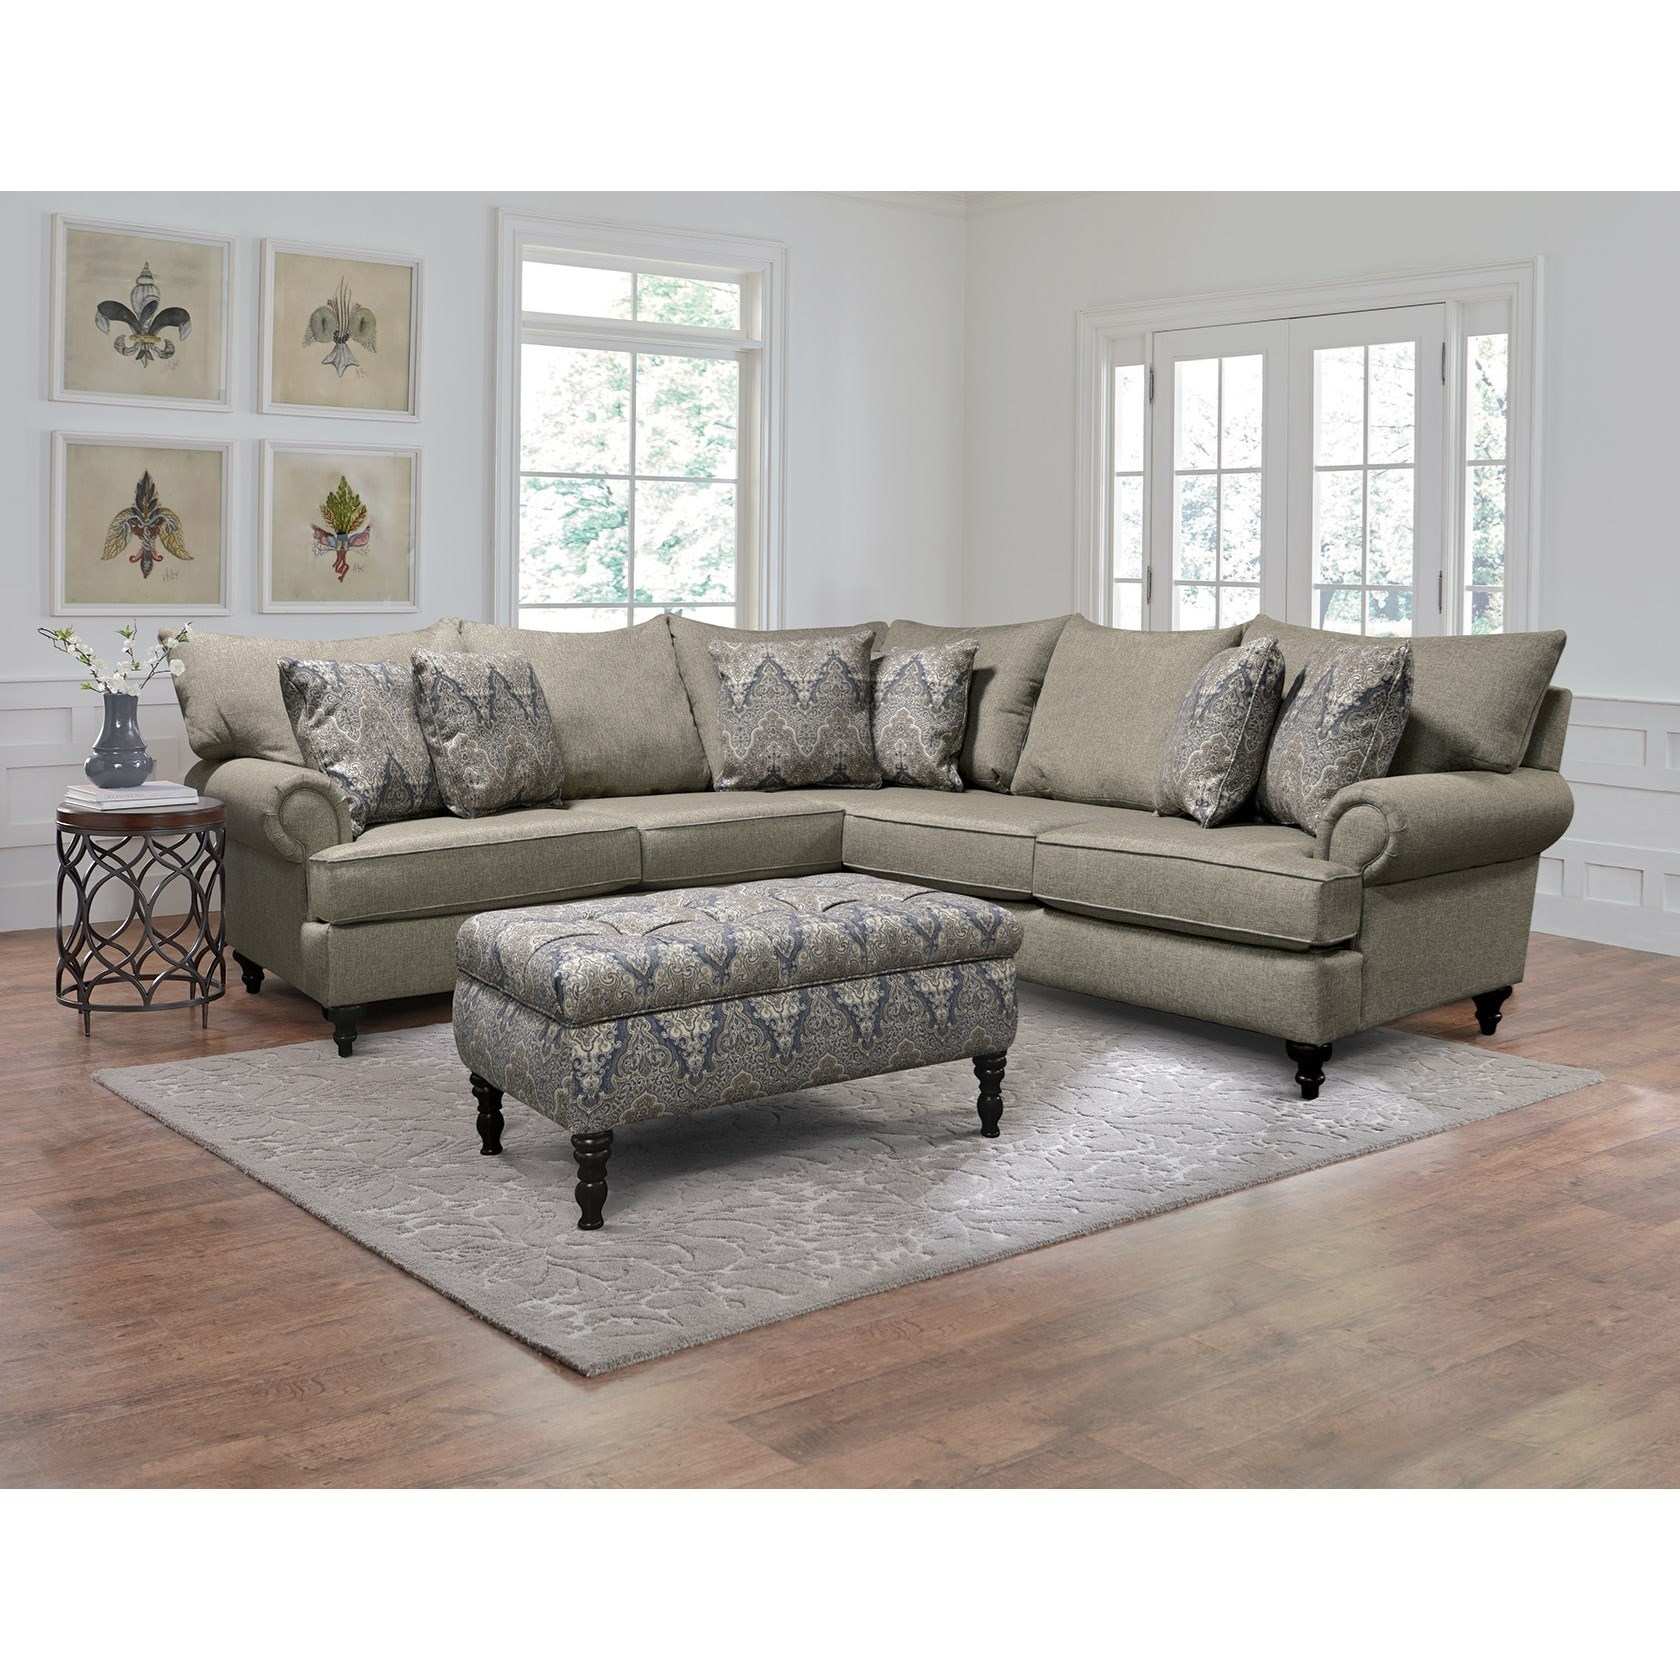 Rosalie Stationary Living Room Group by England at Story & Lee Furniture